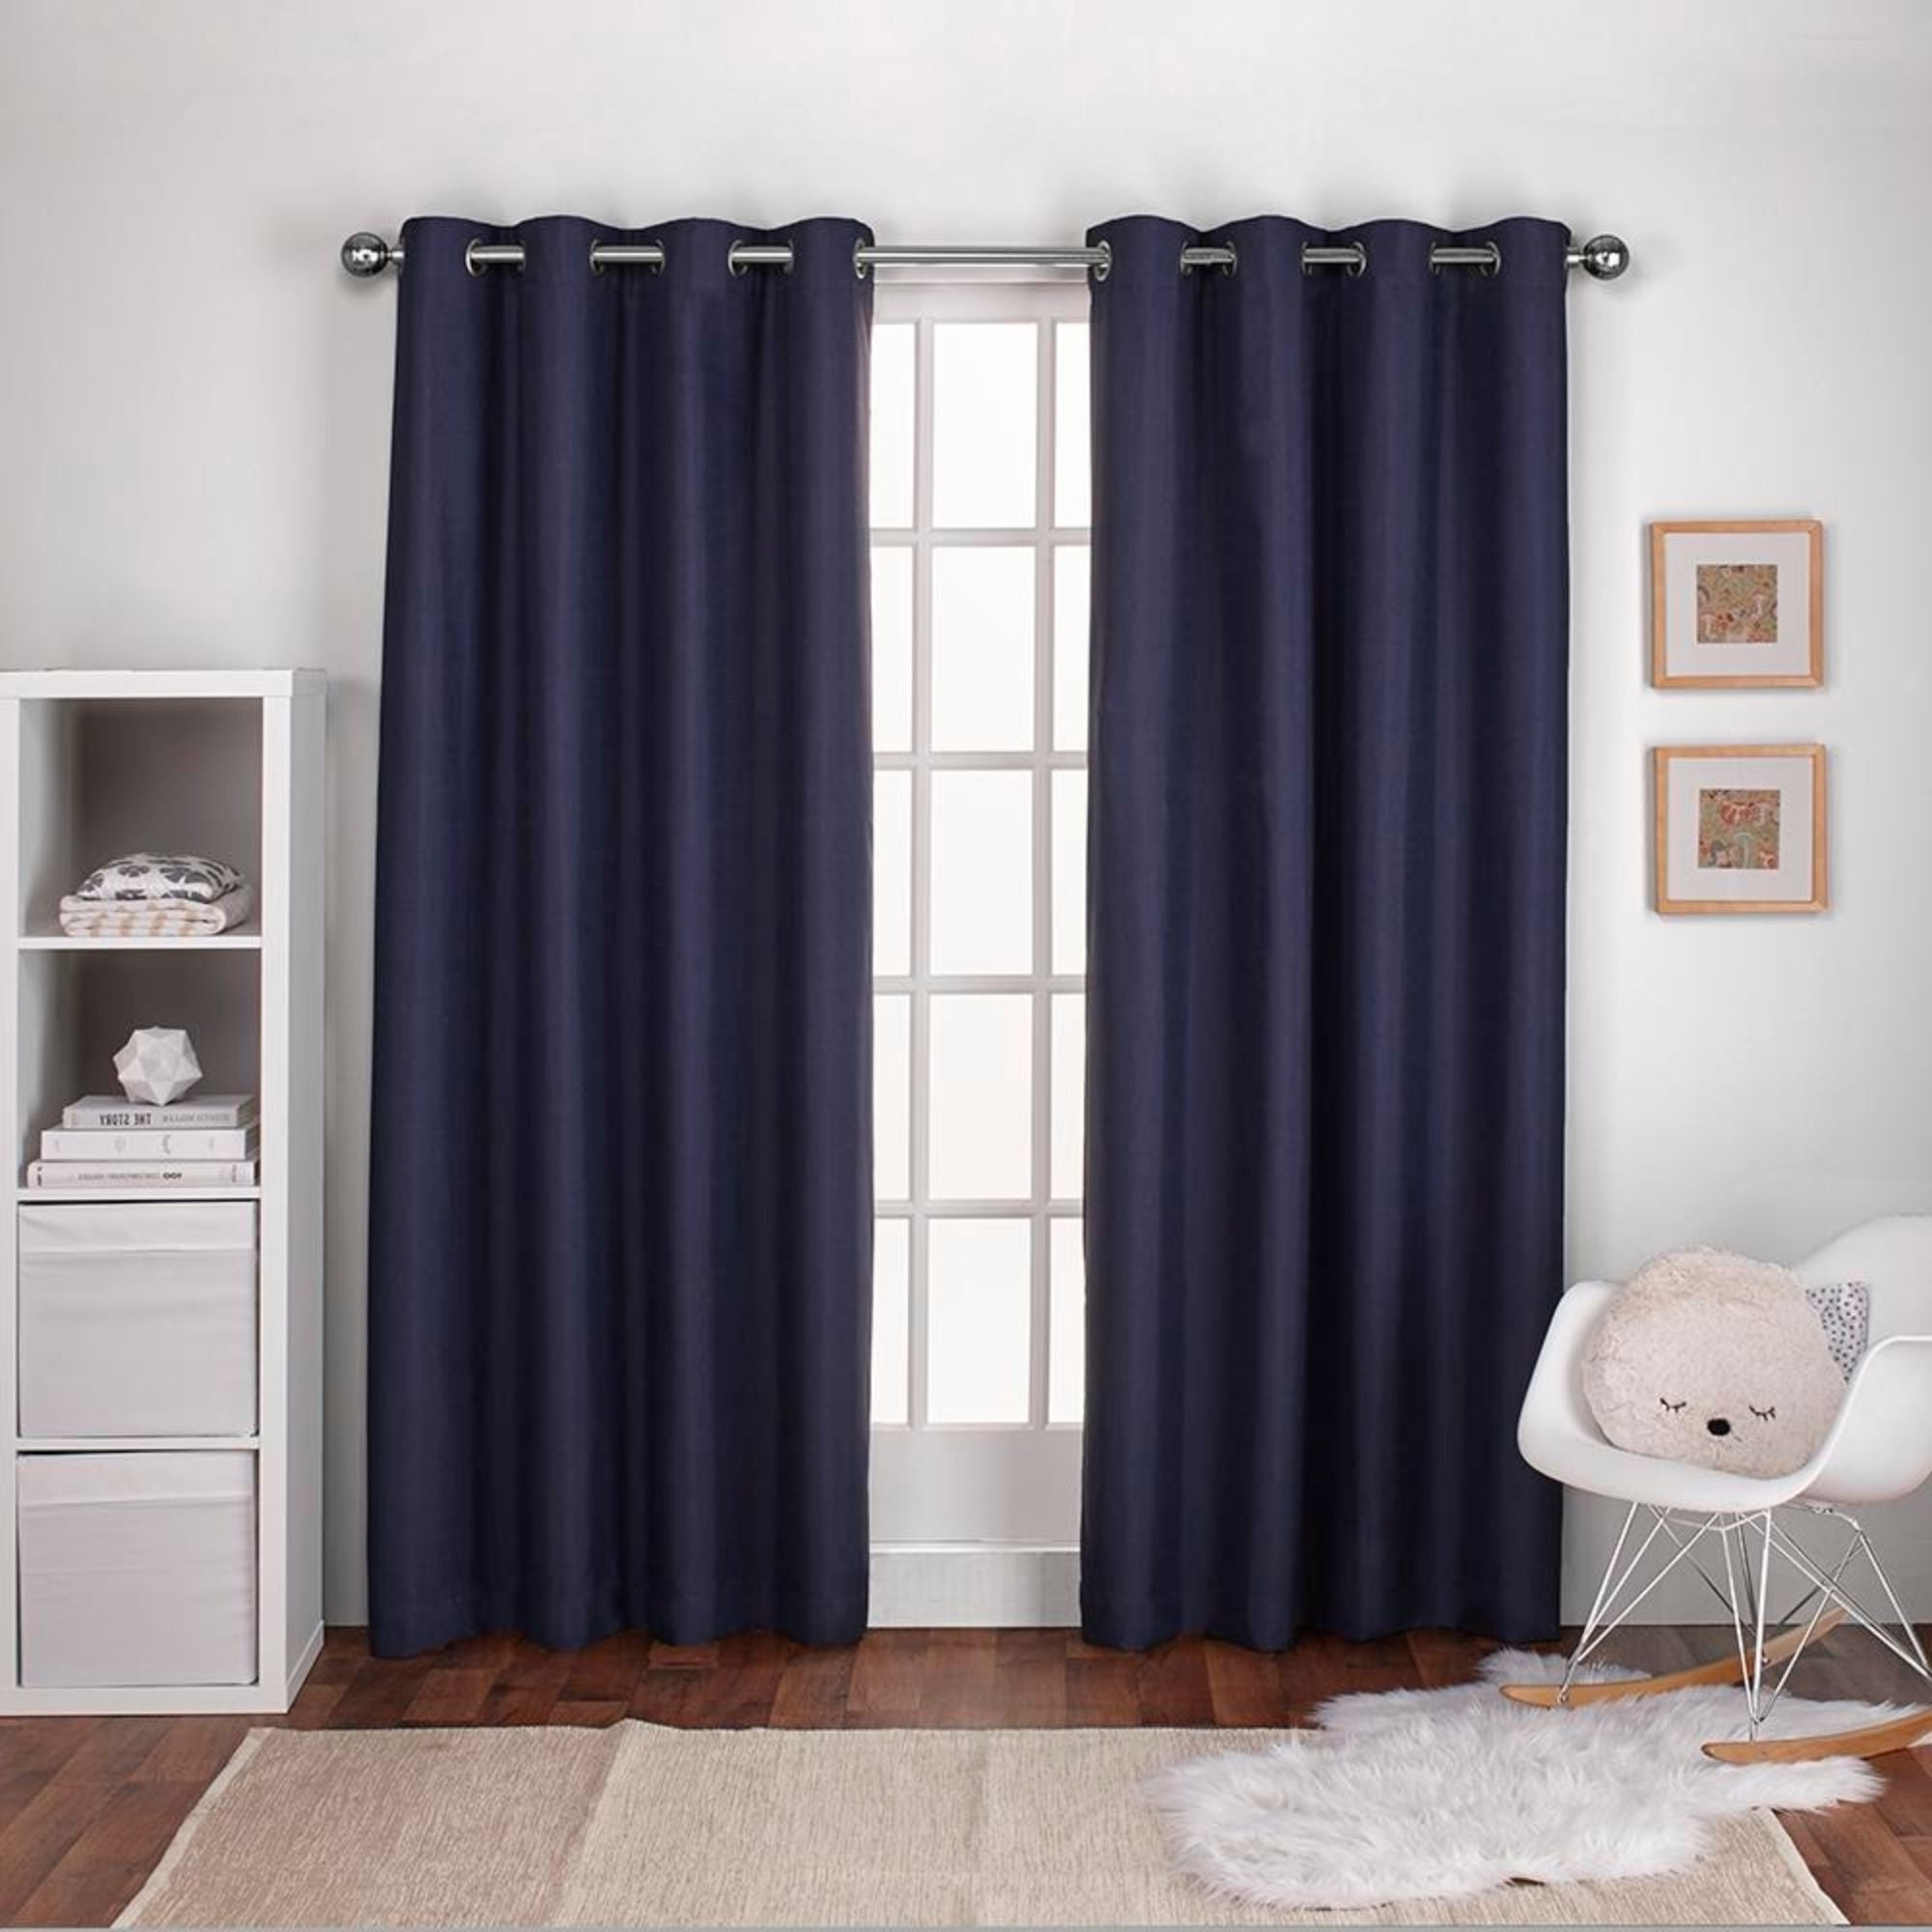 Ati Home Linen Thermal Woven Blackout Grommet Top Curtain Panel Pair Pertaining To 2020 Woven Blackout Grommet Top Curtain Panel Pairs (View 17 of 20)